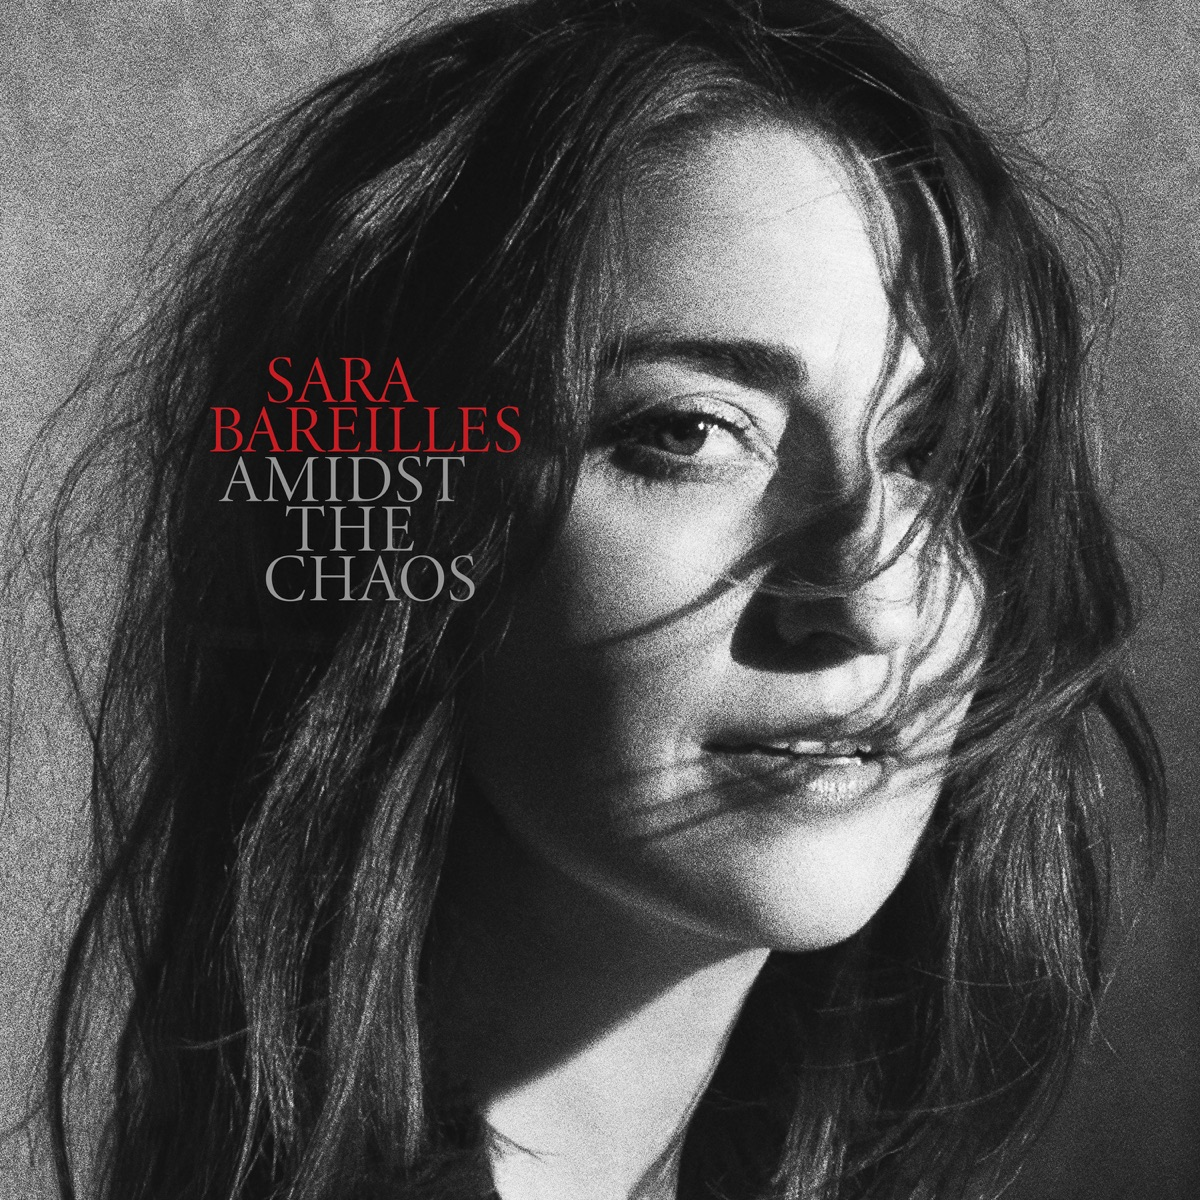 Amidst the Chaos Sara Bareilles CD cover